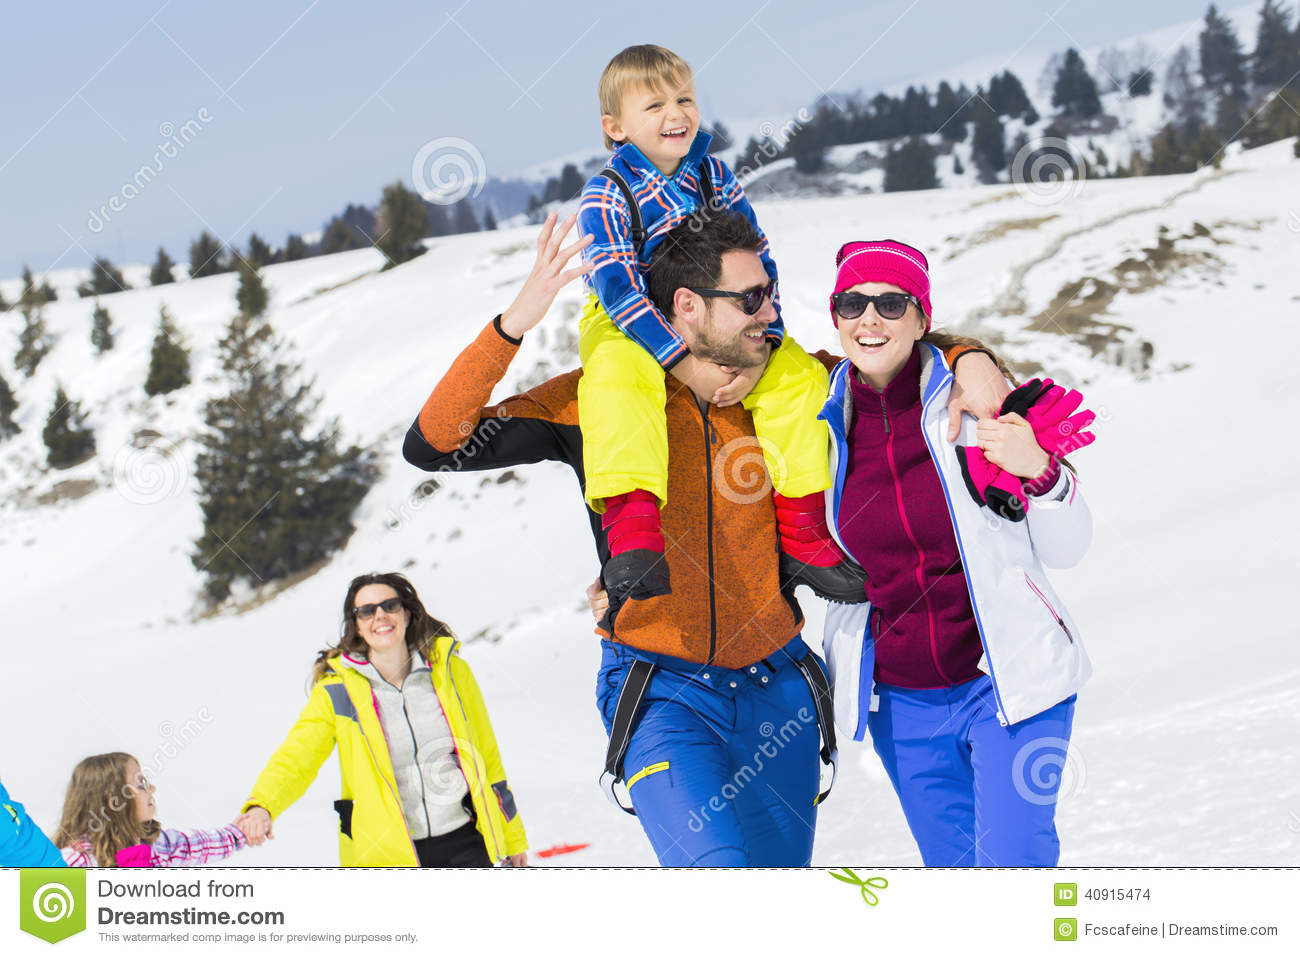 Two families with children walking in the snow